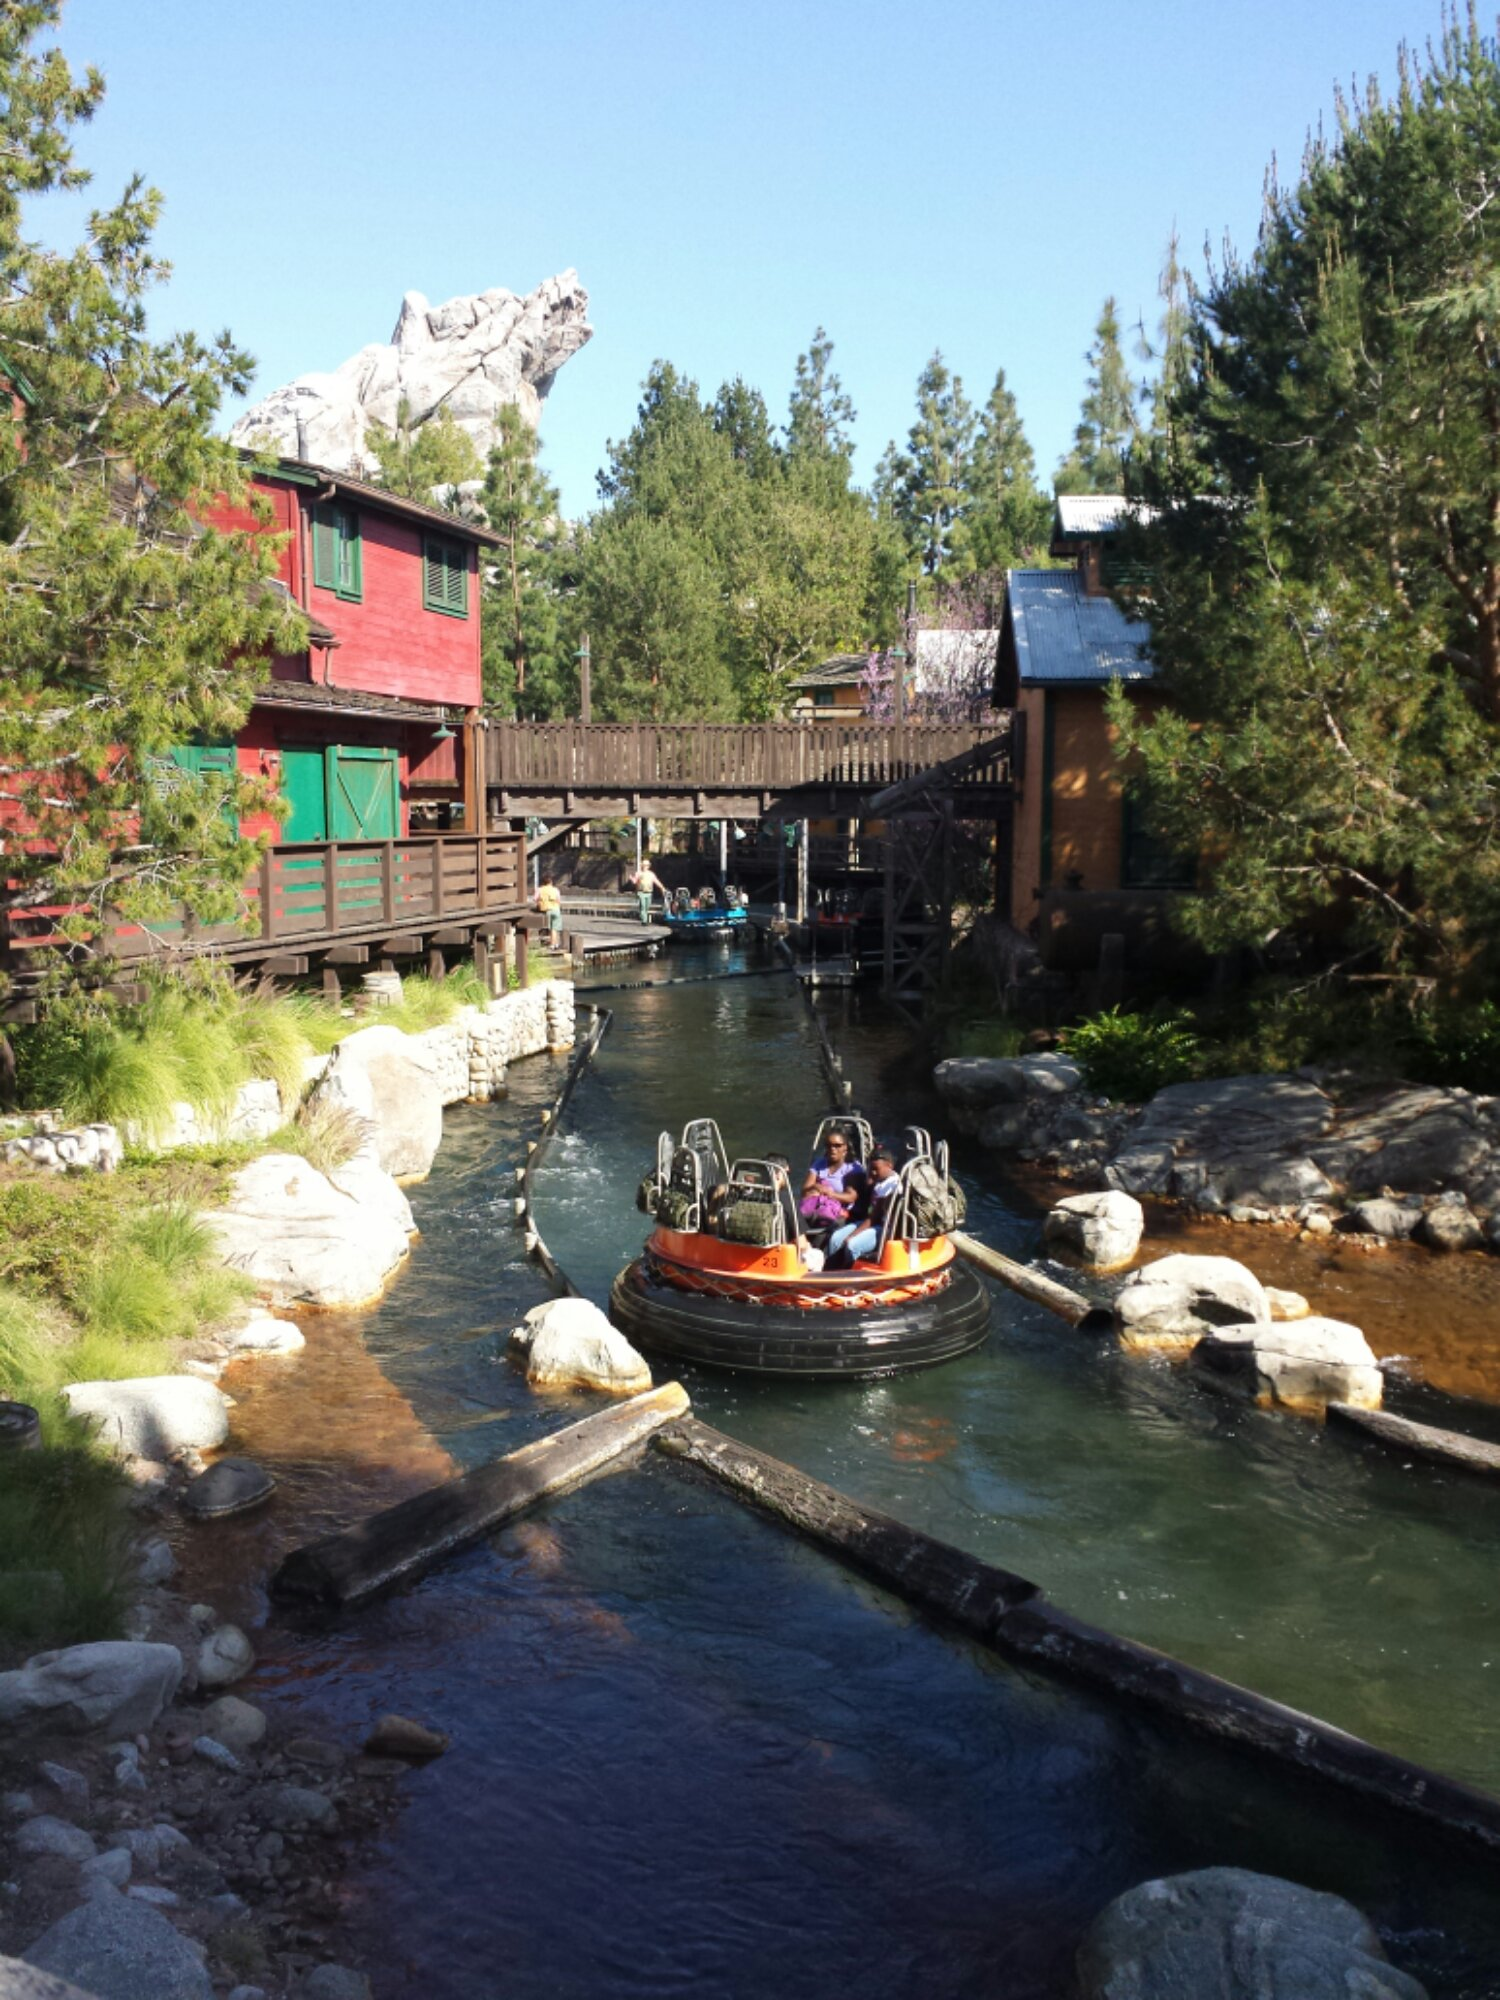 Grizzly River Run – a posted 50 min wait